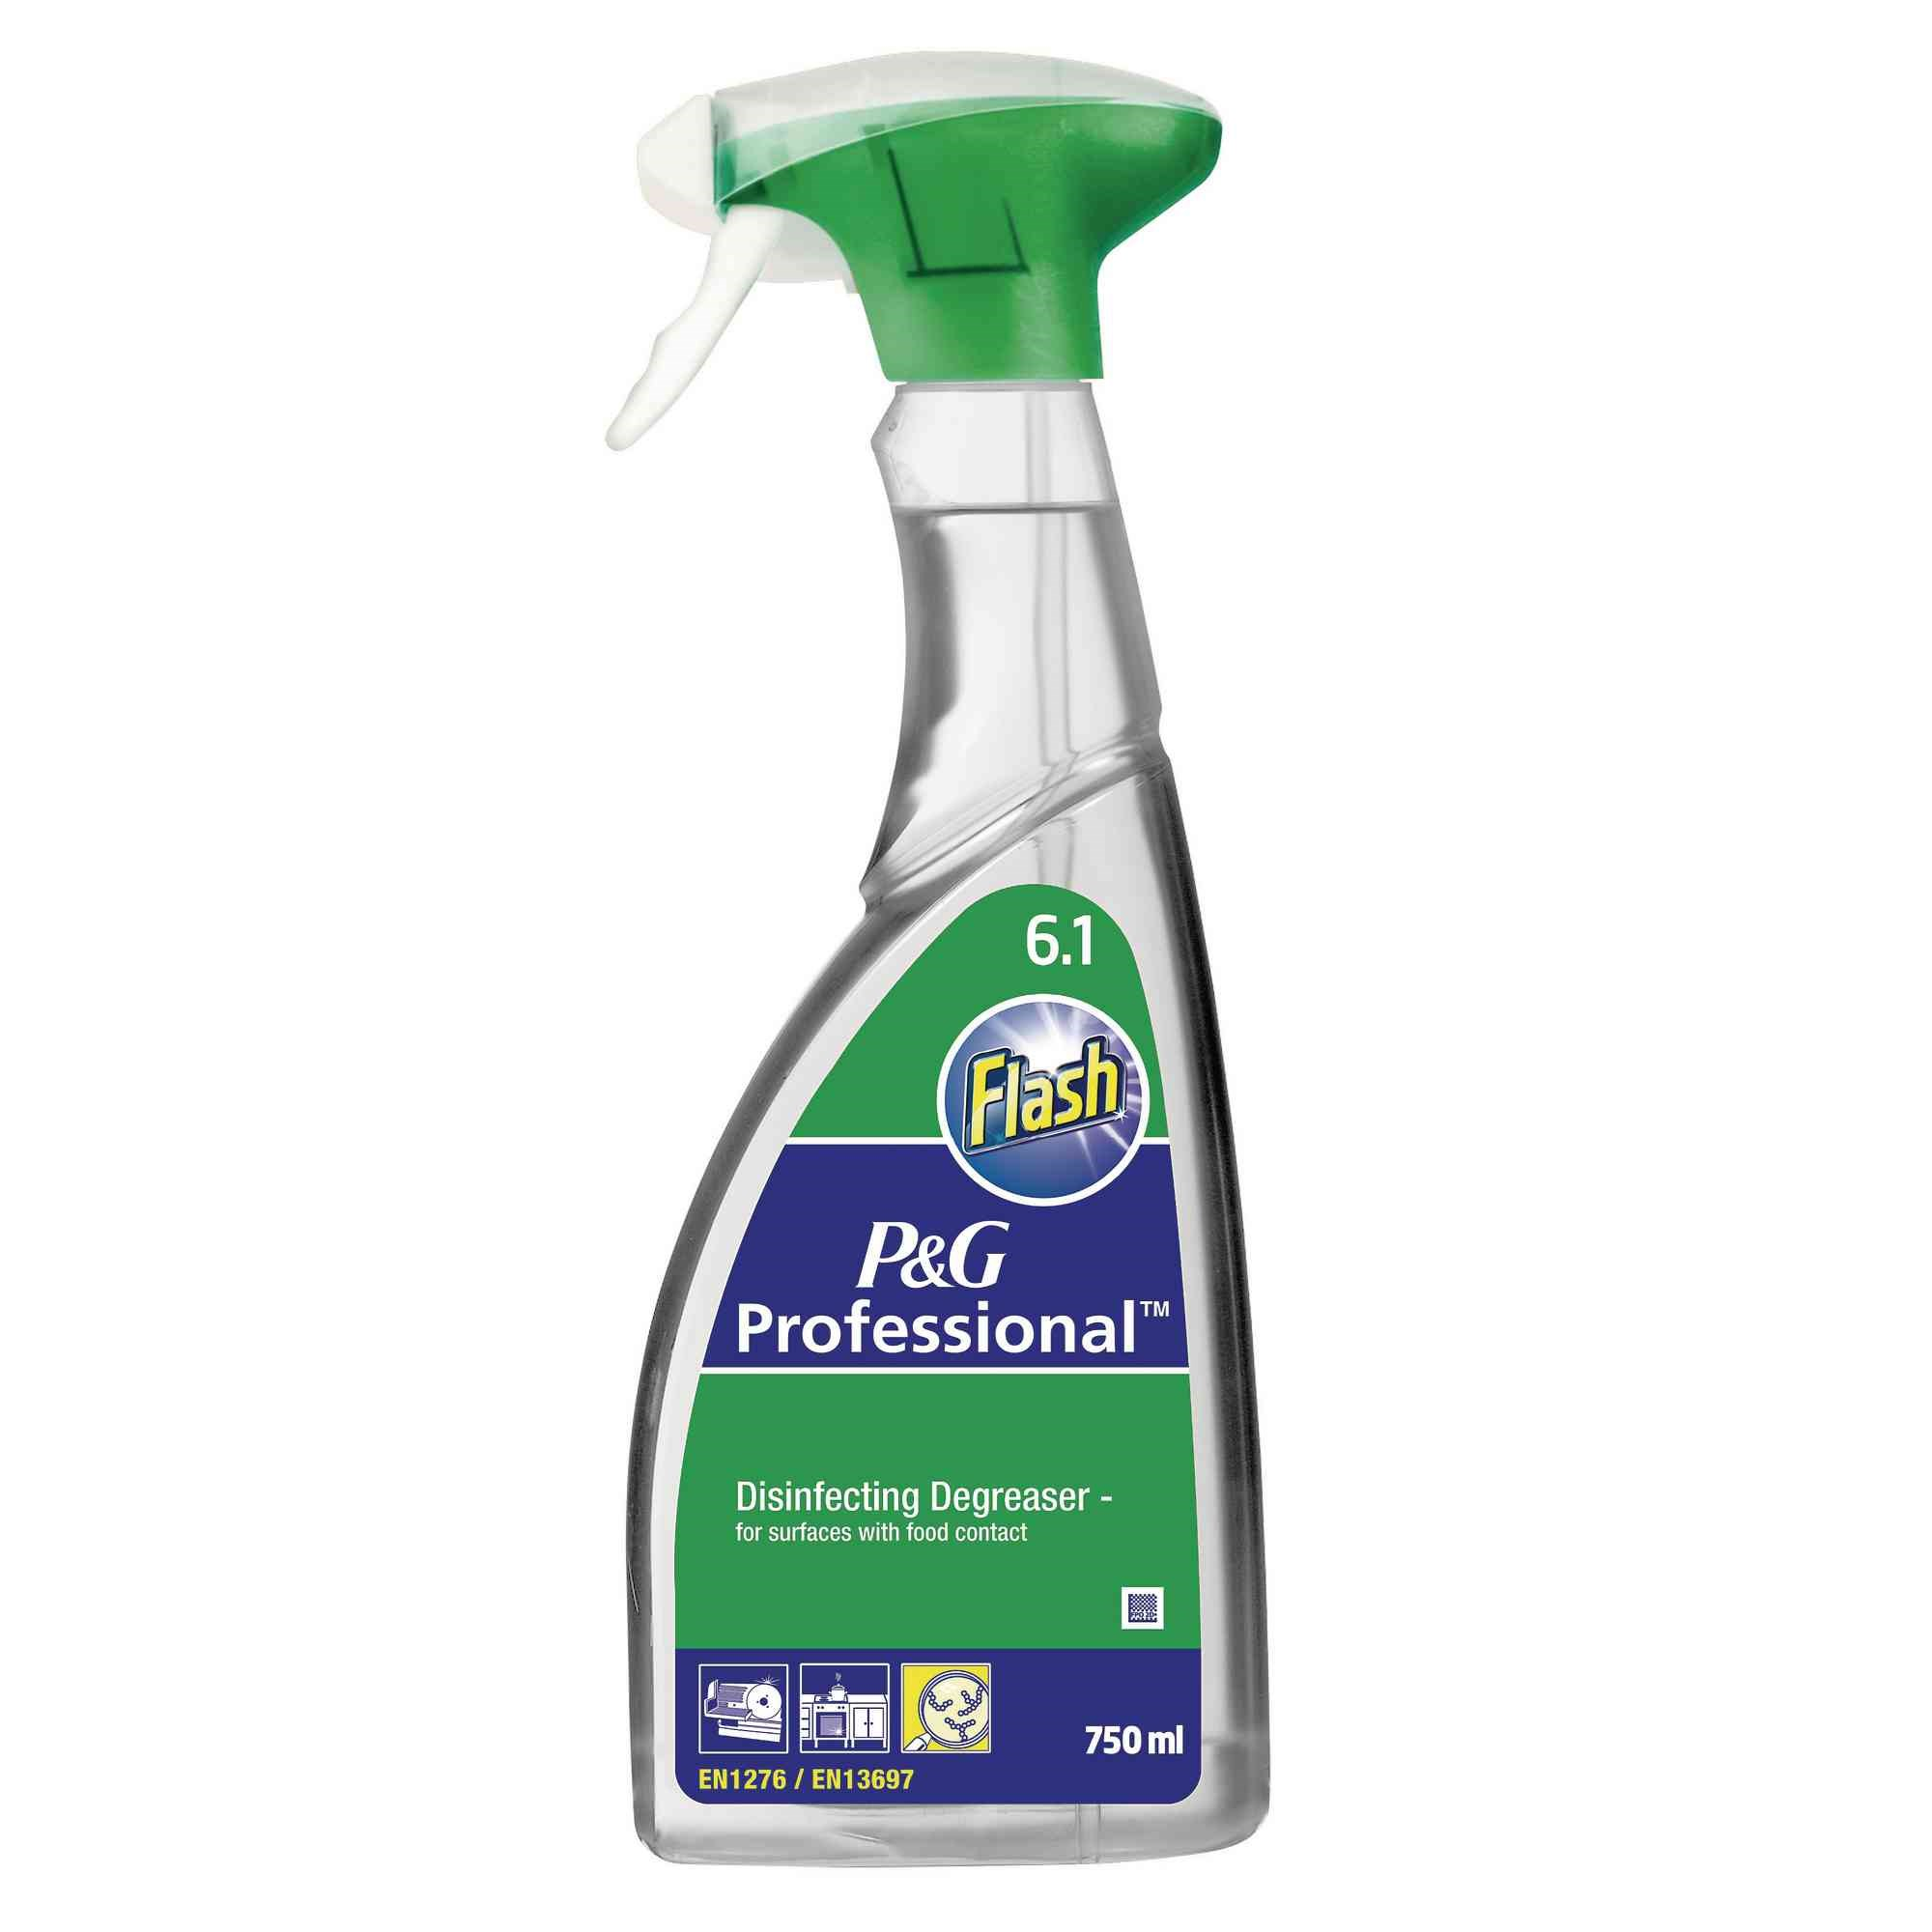 P & G Professional Flash Disinfecting Degreaser 750mL (Pack of 6)